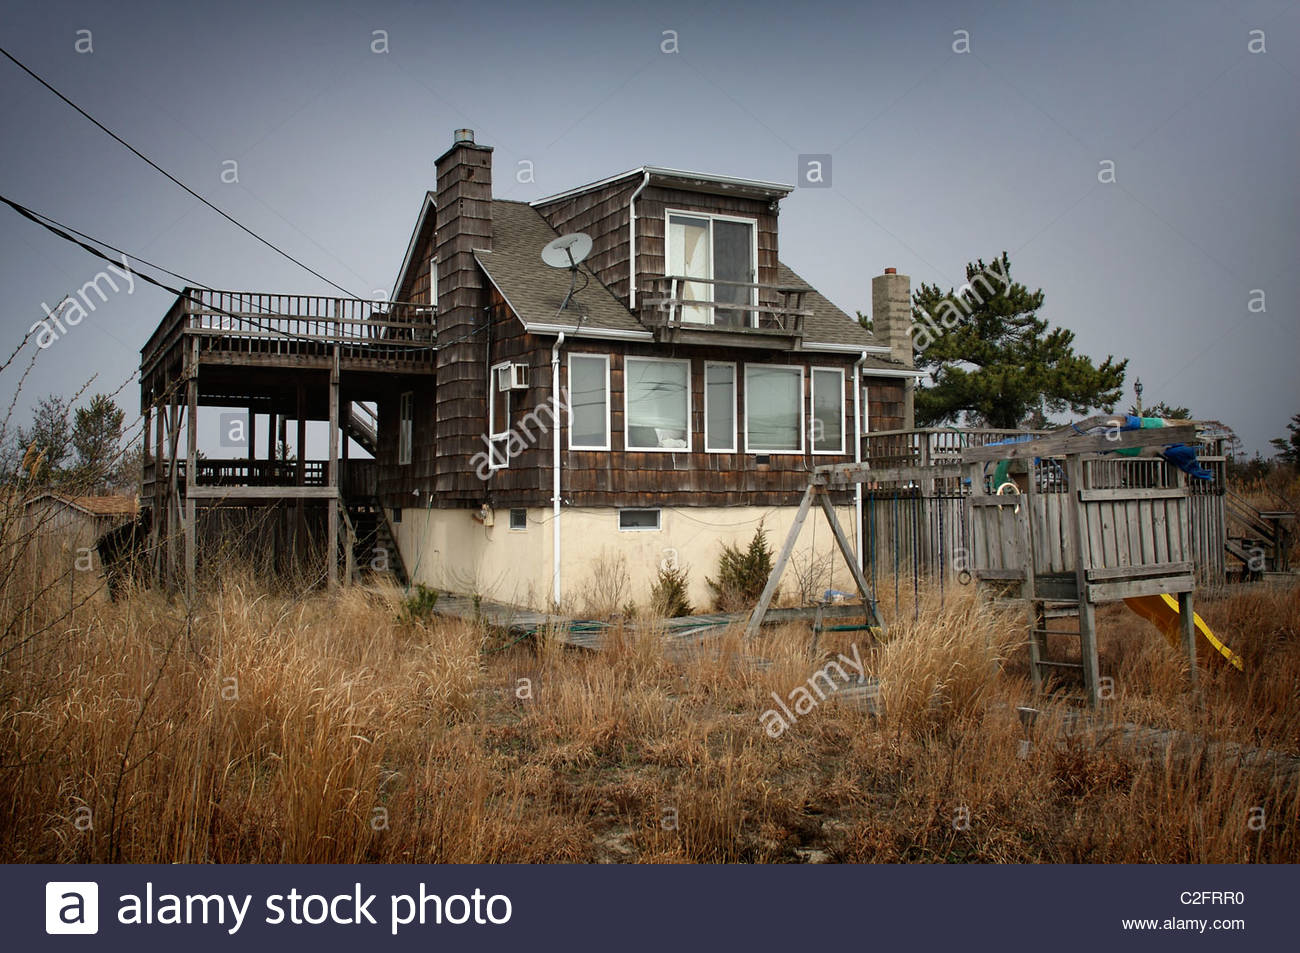 The Home Owned By Joseph Brewer Where Prostitute Shannan